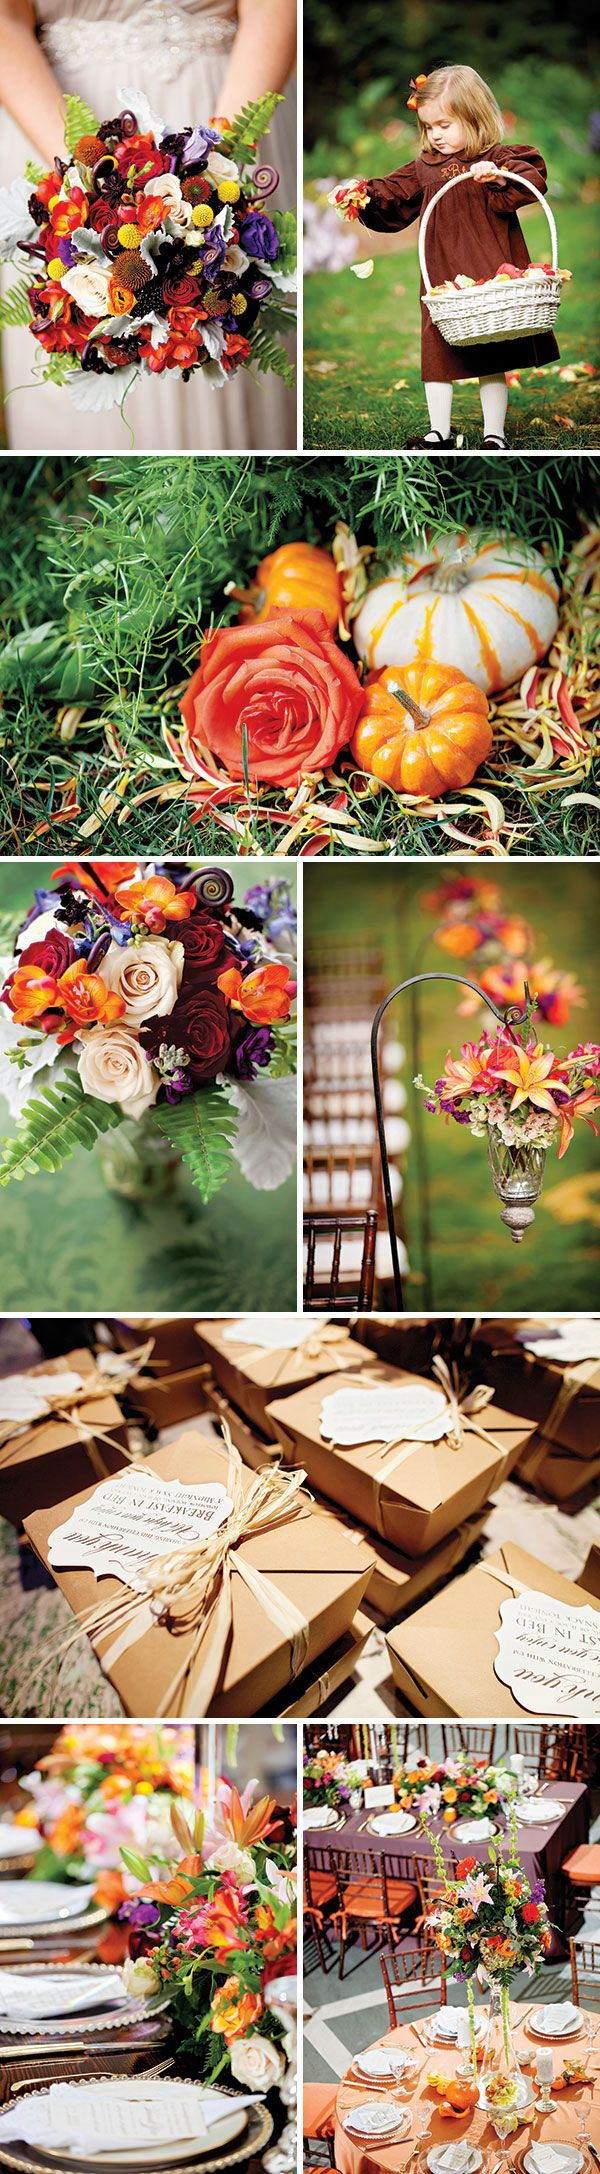 Wedding decorations yellow and gray november 2018  best Fall Wedding Trends  Sugar Creek images on Pinterest